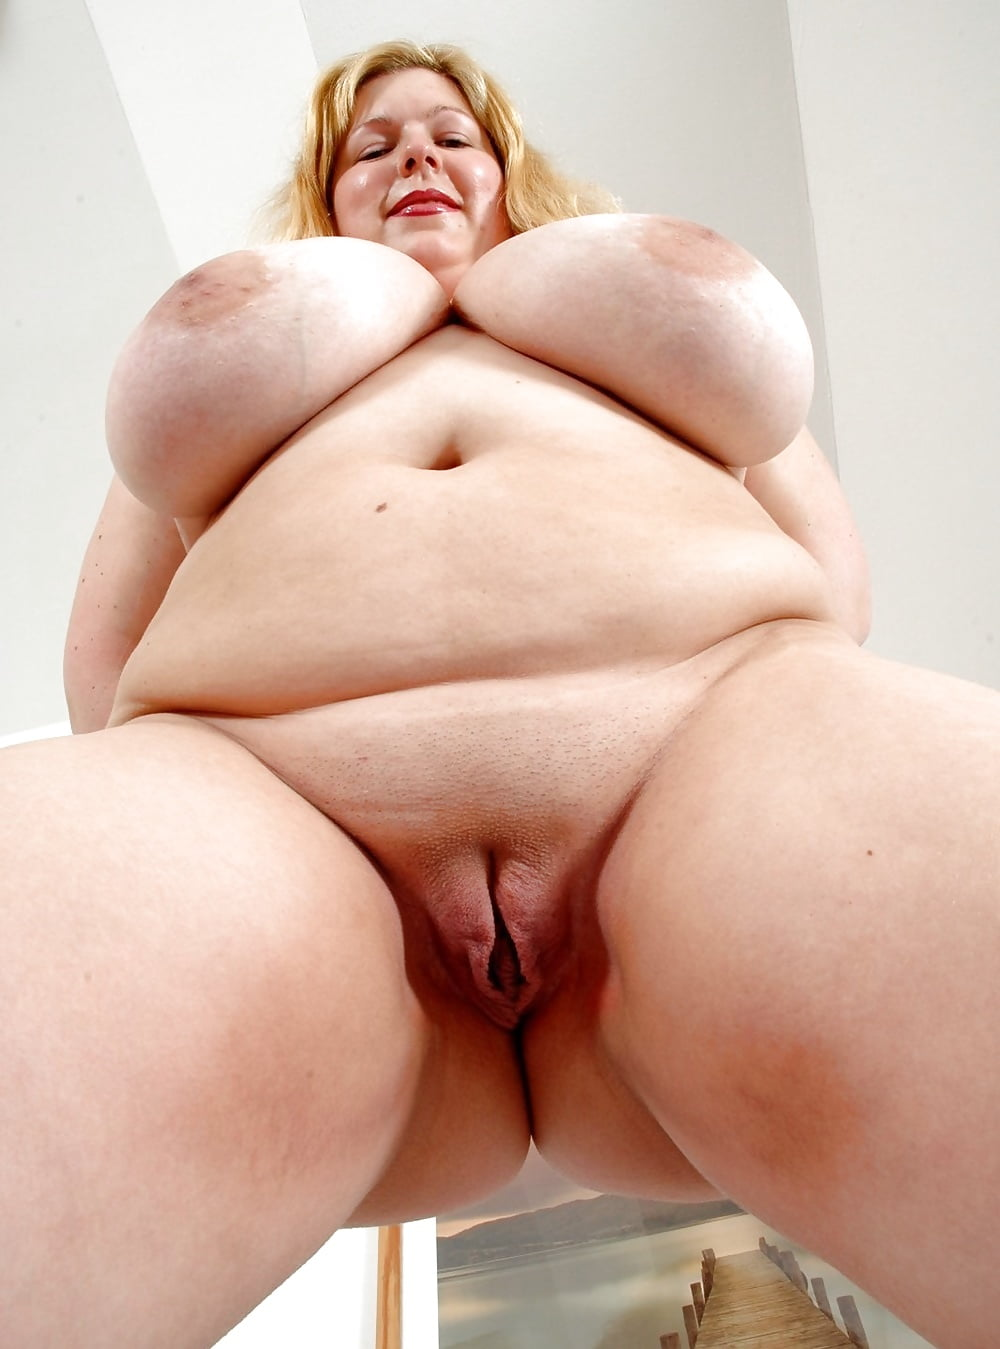 Fat women pussy close up 13